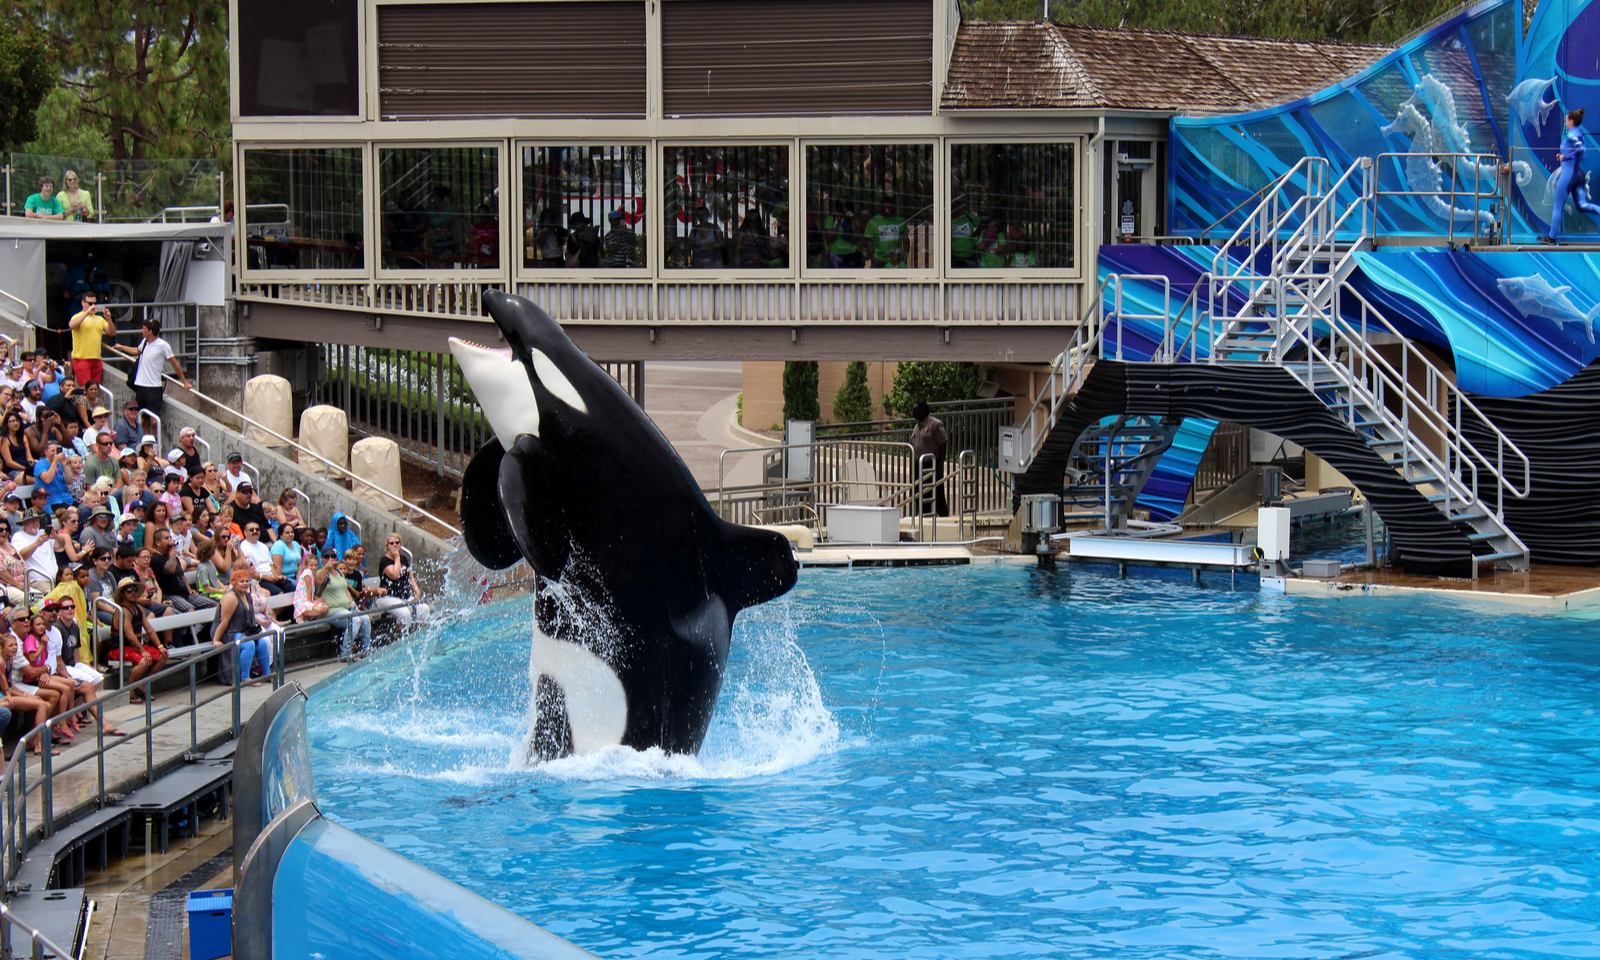 U.K. Travel Agency to Stop Offering Tickets to Attractions with Captive Killer Whales